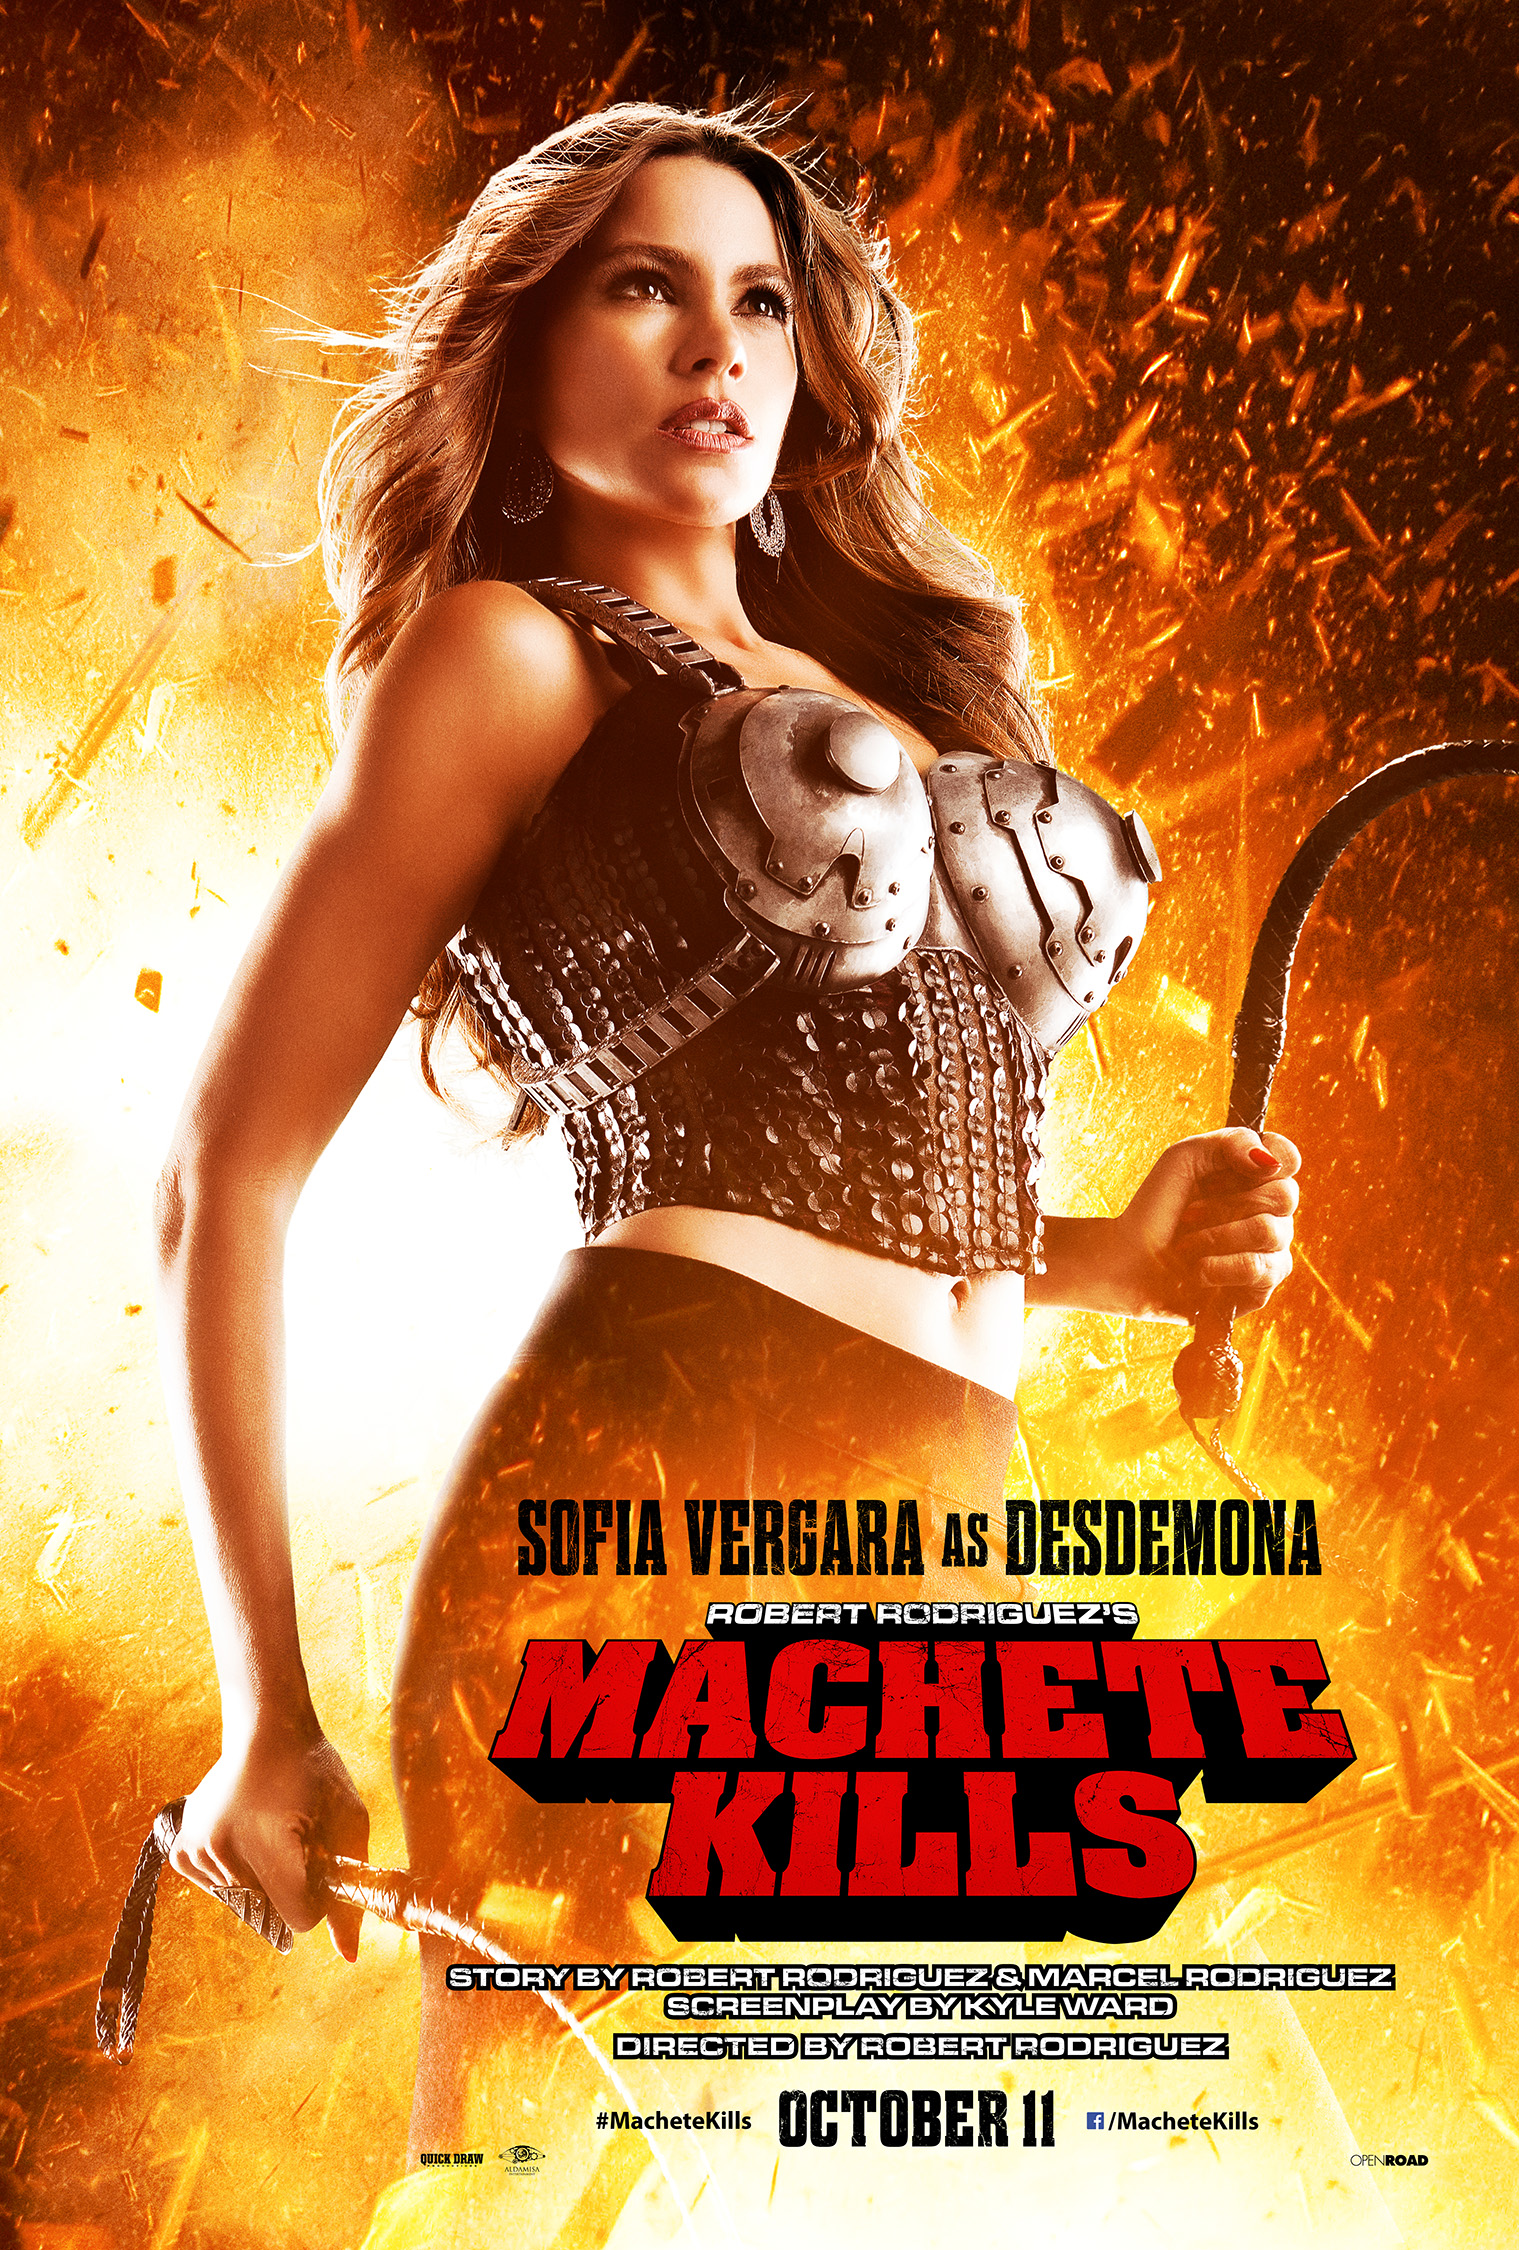 machete kills MC2 SOFIA Final v006 200dpi oct11 rgb Machete Kills His Co Stars In New Official Posters and Stills